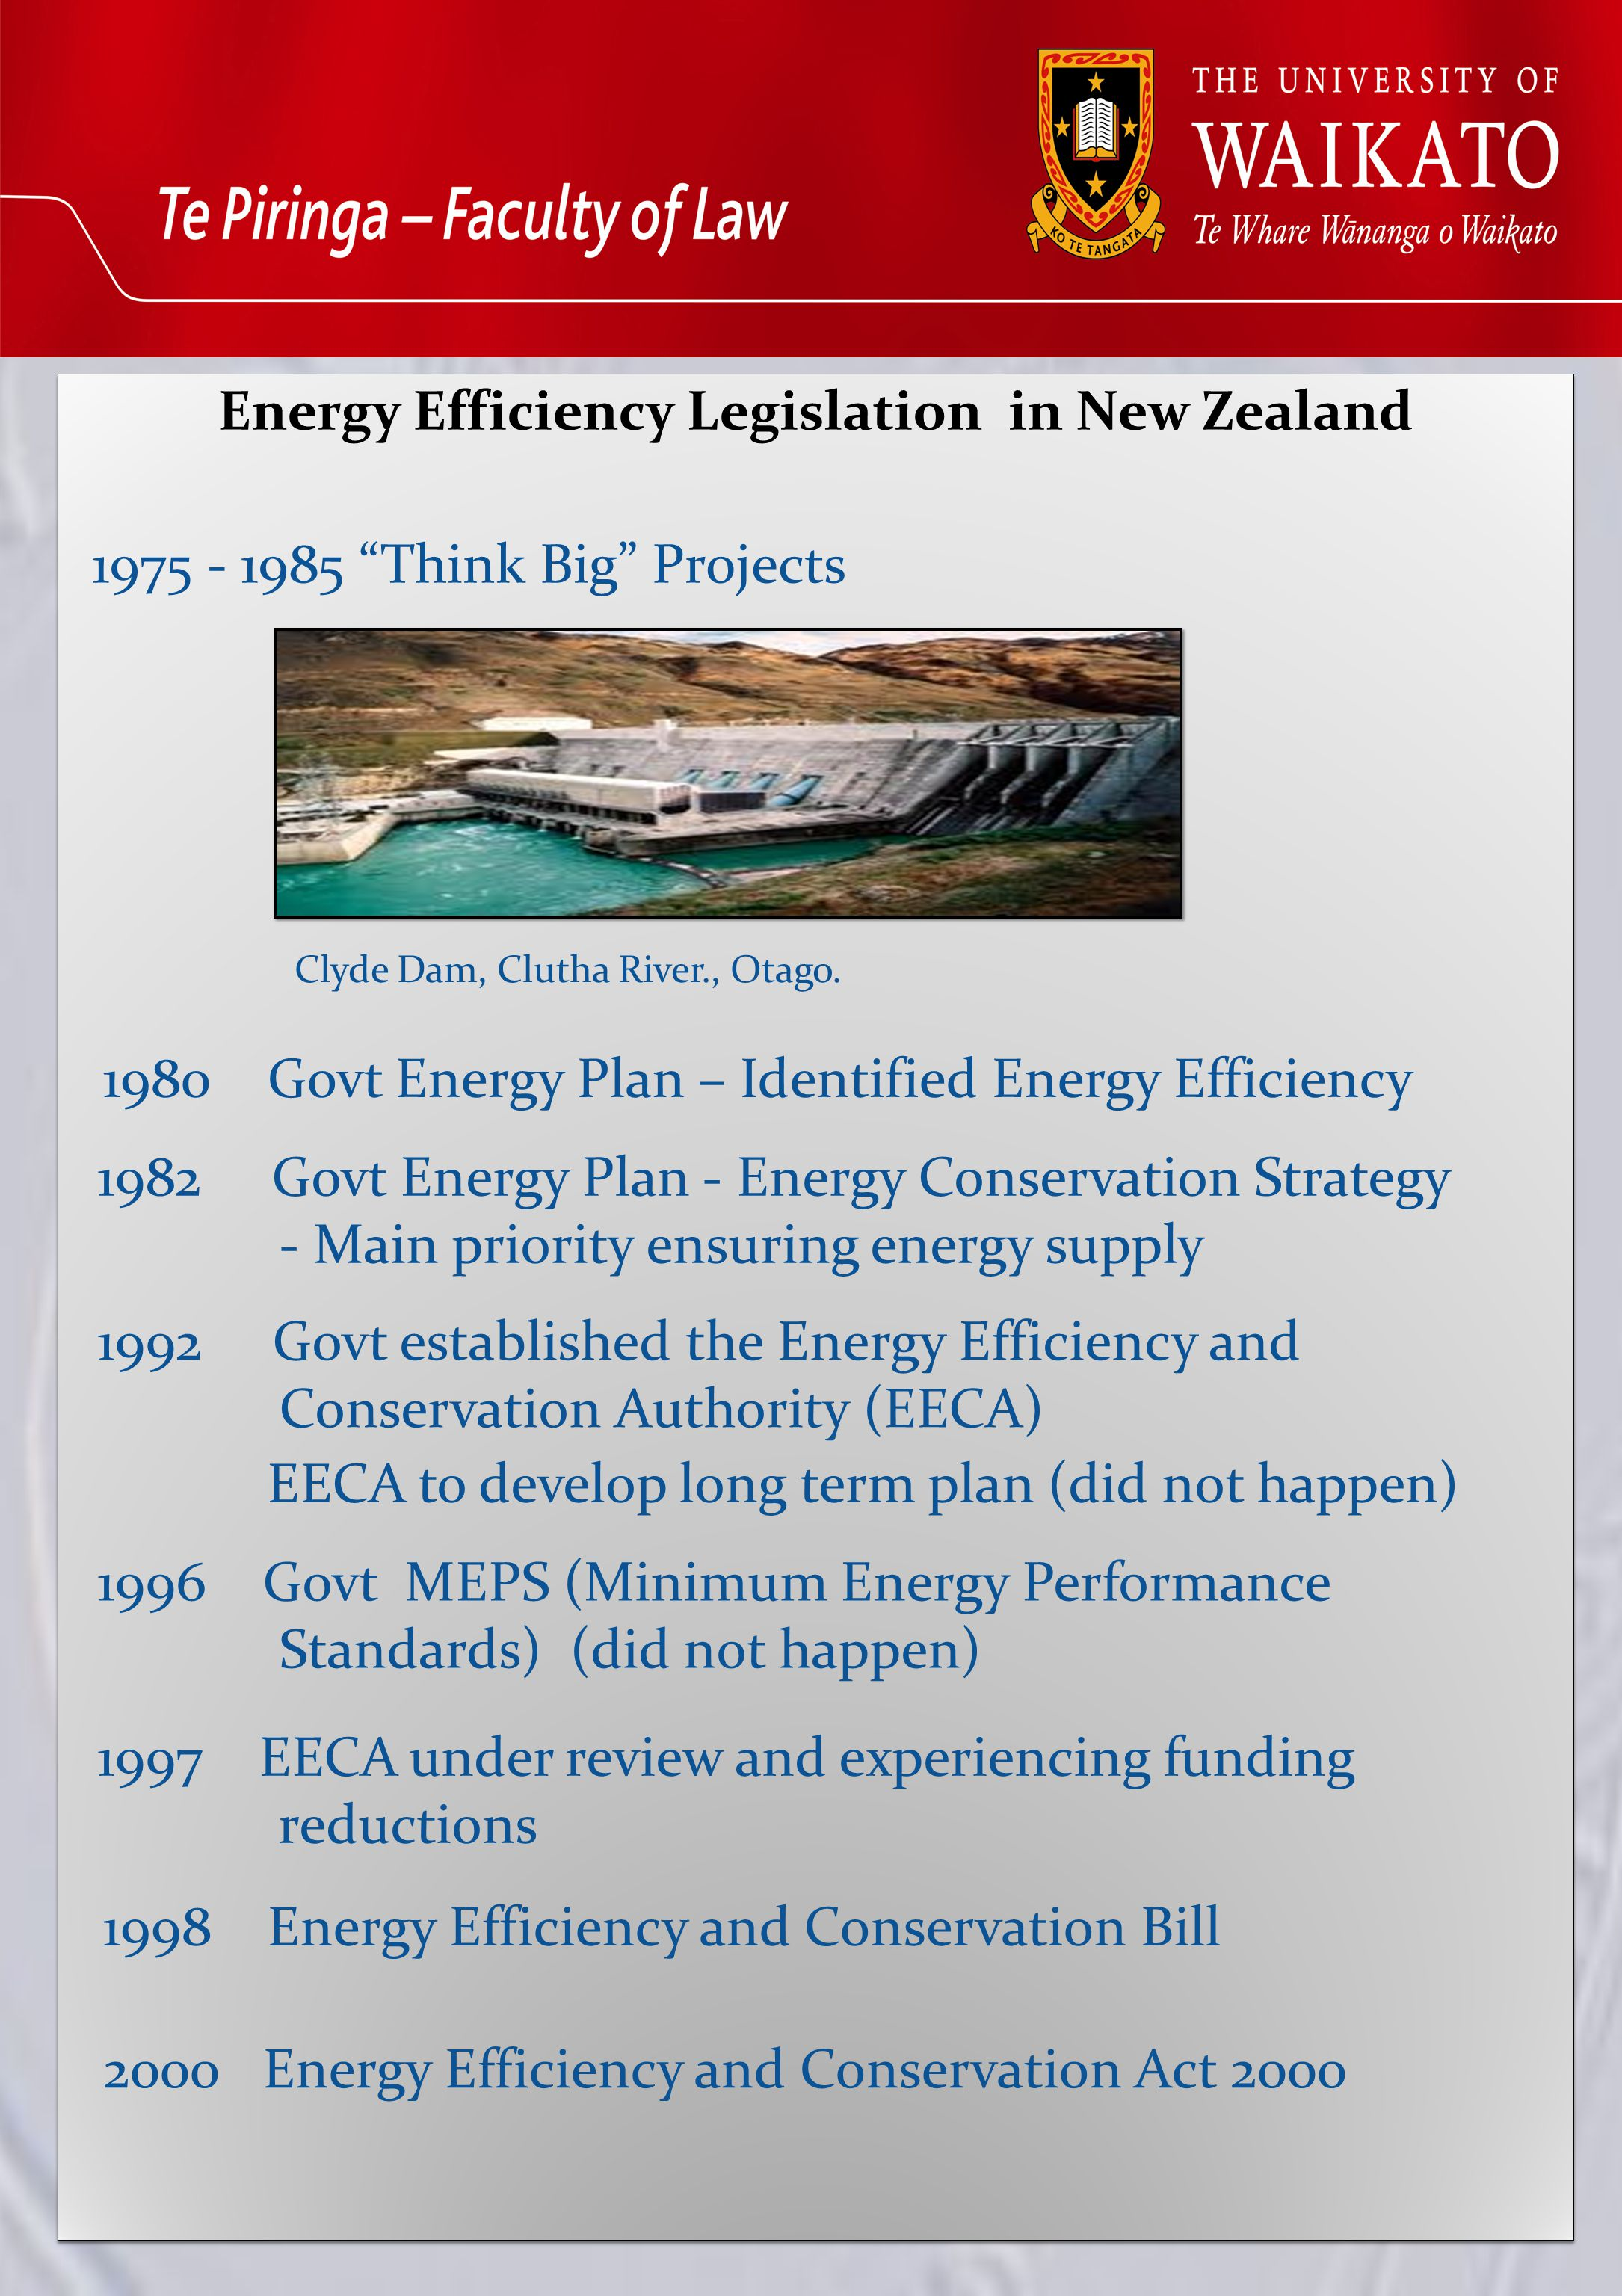 Energy Efficiency Legislation in New Zealand Energy Efficiency Legislation in New Zealand 1975 - 1985 Think Big Projects 1980 Govt Energy Plan – Identified Energy Efficiency 1982 Govt Energy Plan - Energy Conservation Strategy - Main priority ensuring energy supply 1992 Govt established the Energy Efficiency and Conservation Authority (EECA) EECA to develop long term plan (did not happen) 1996 Govt MEPS (Minimum Energy Performance Standards) (did not happen) 1997 EECA under review and experiencing funding reductions 1998 Energy Efficiency and Conservation Bill 2000 Energy Efficiency and Conservation Act 2000 Clyde Dam, Clutha River., Otago.